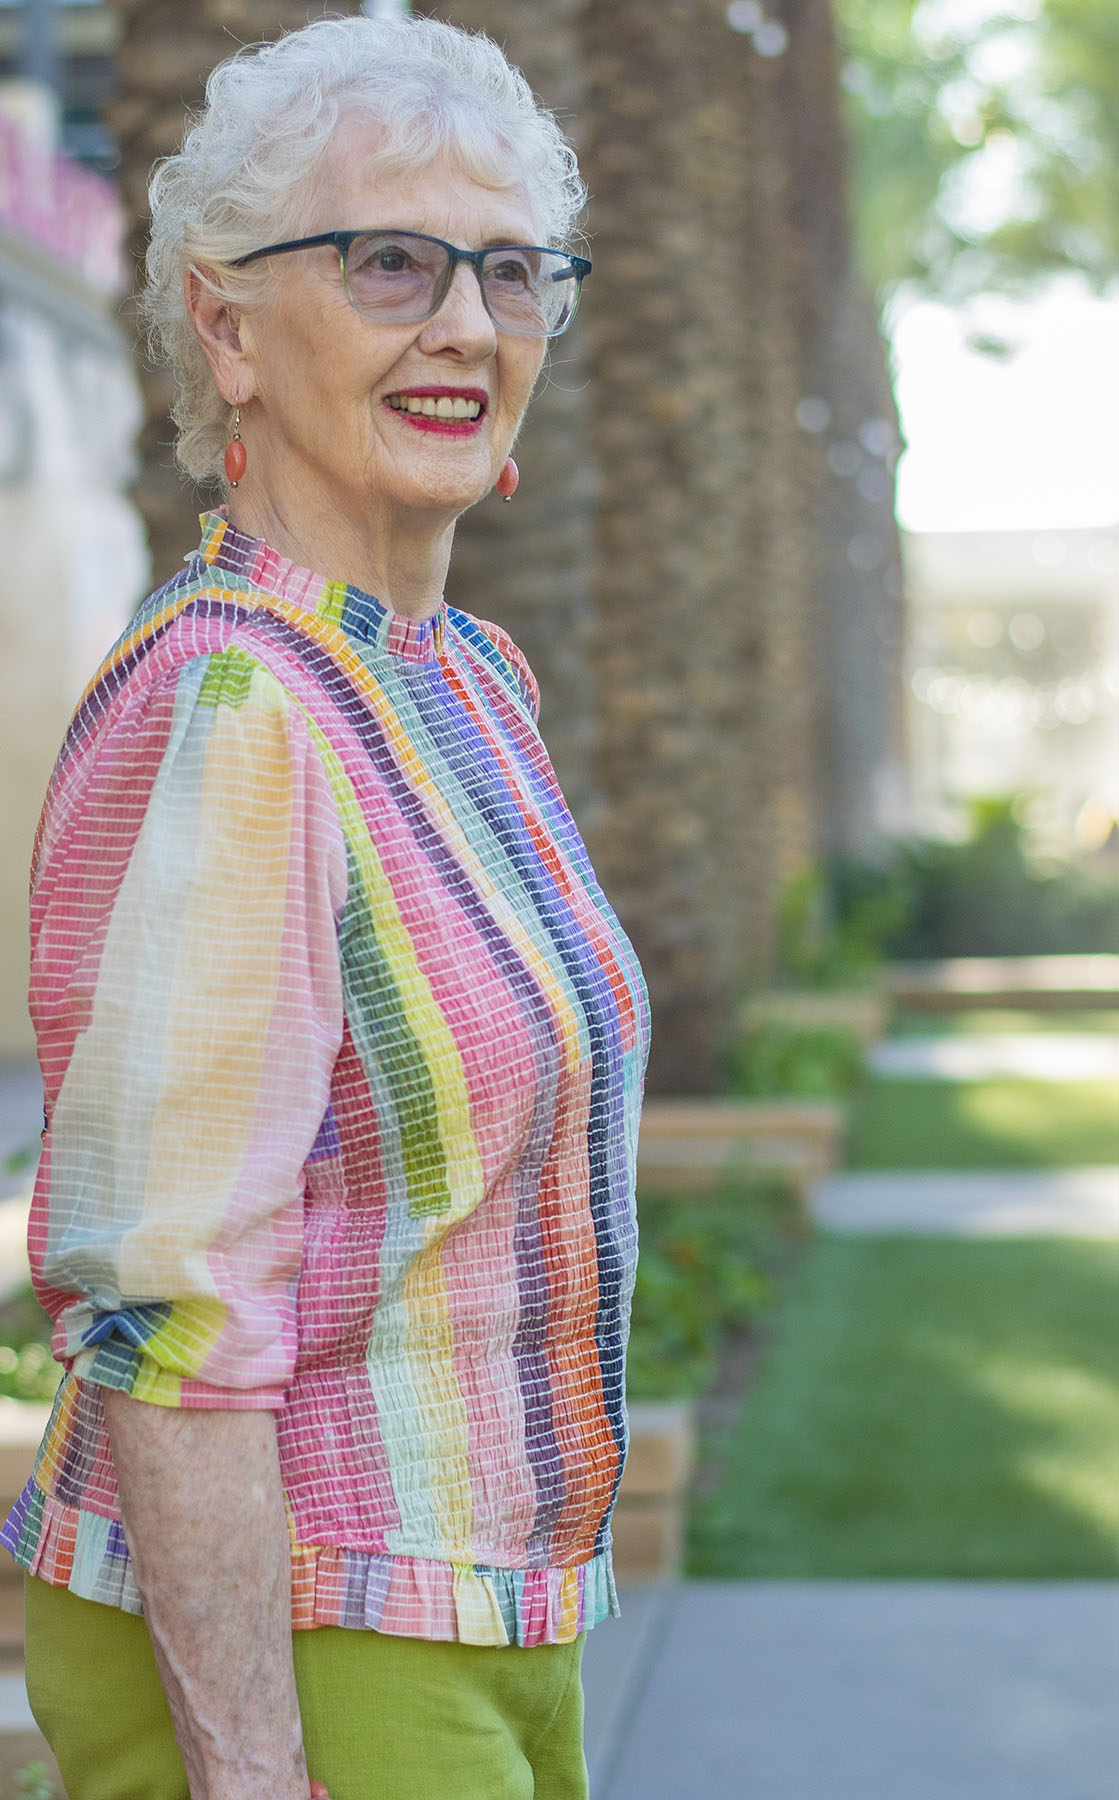 Adding Energy to your Fall Style by Wearing Color